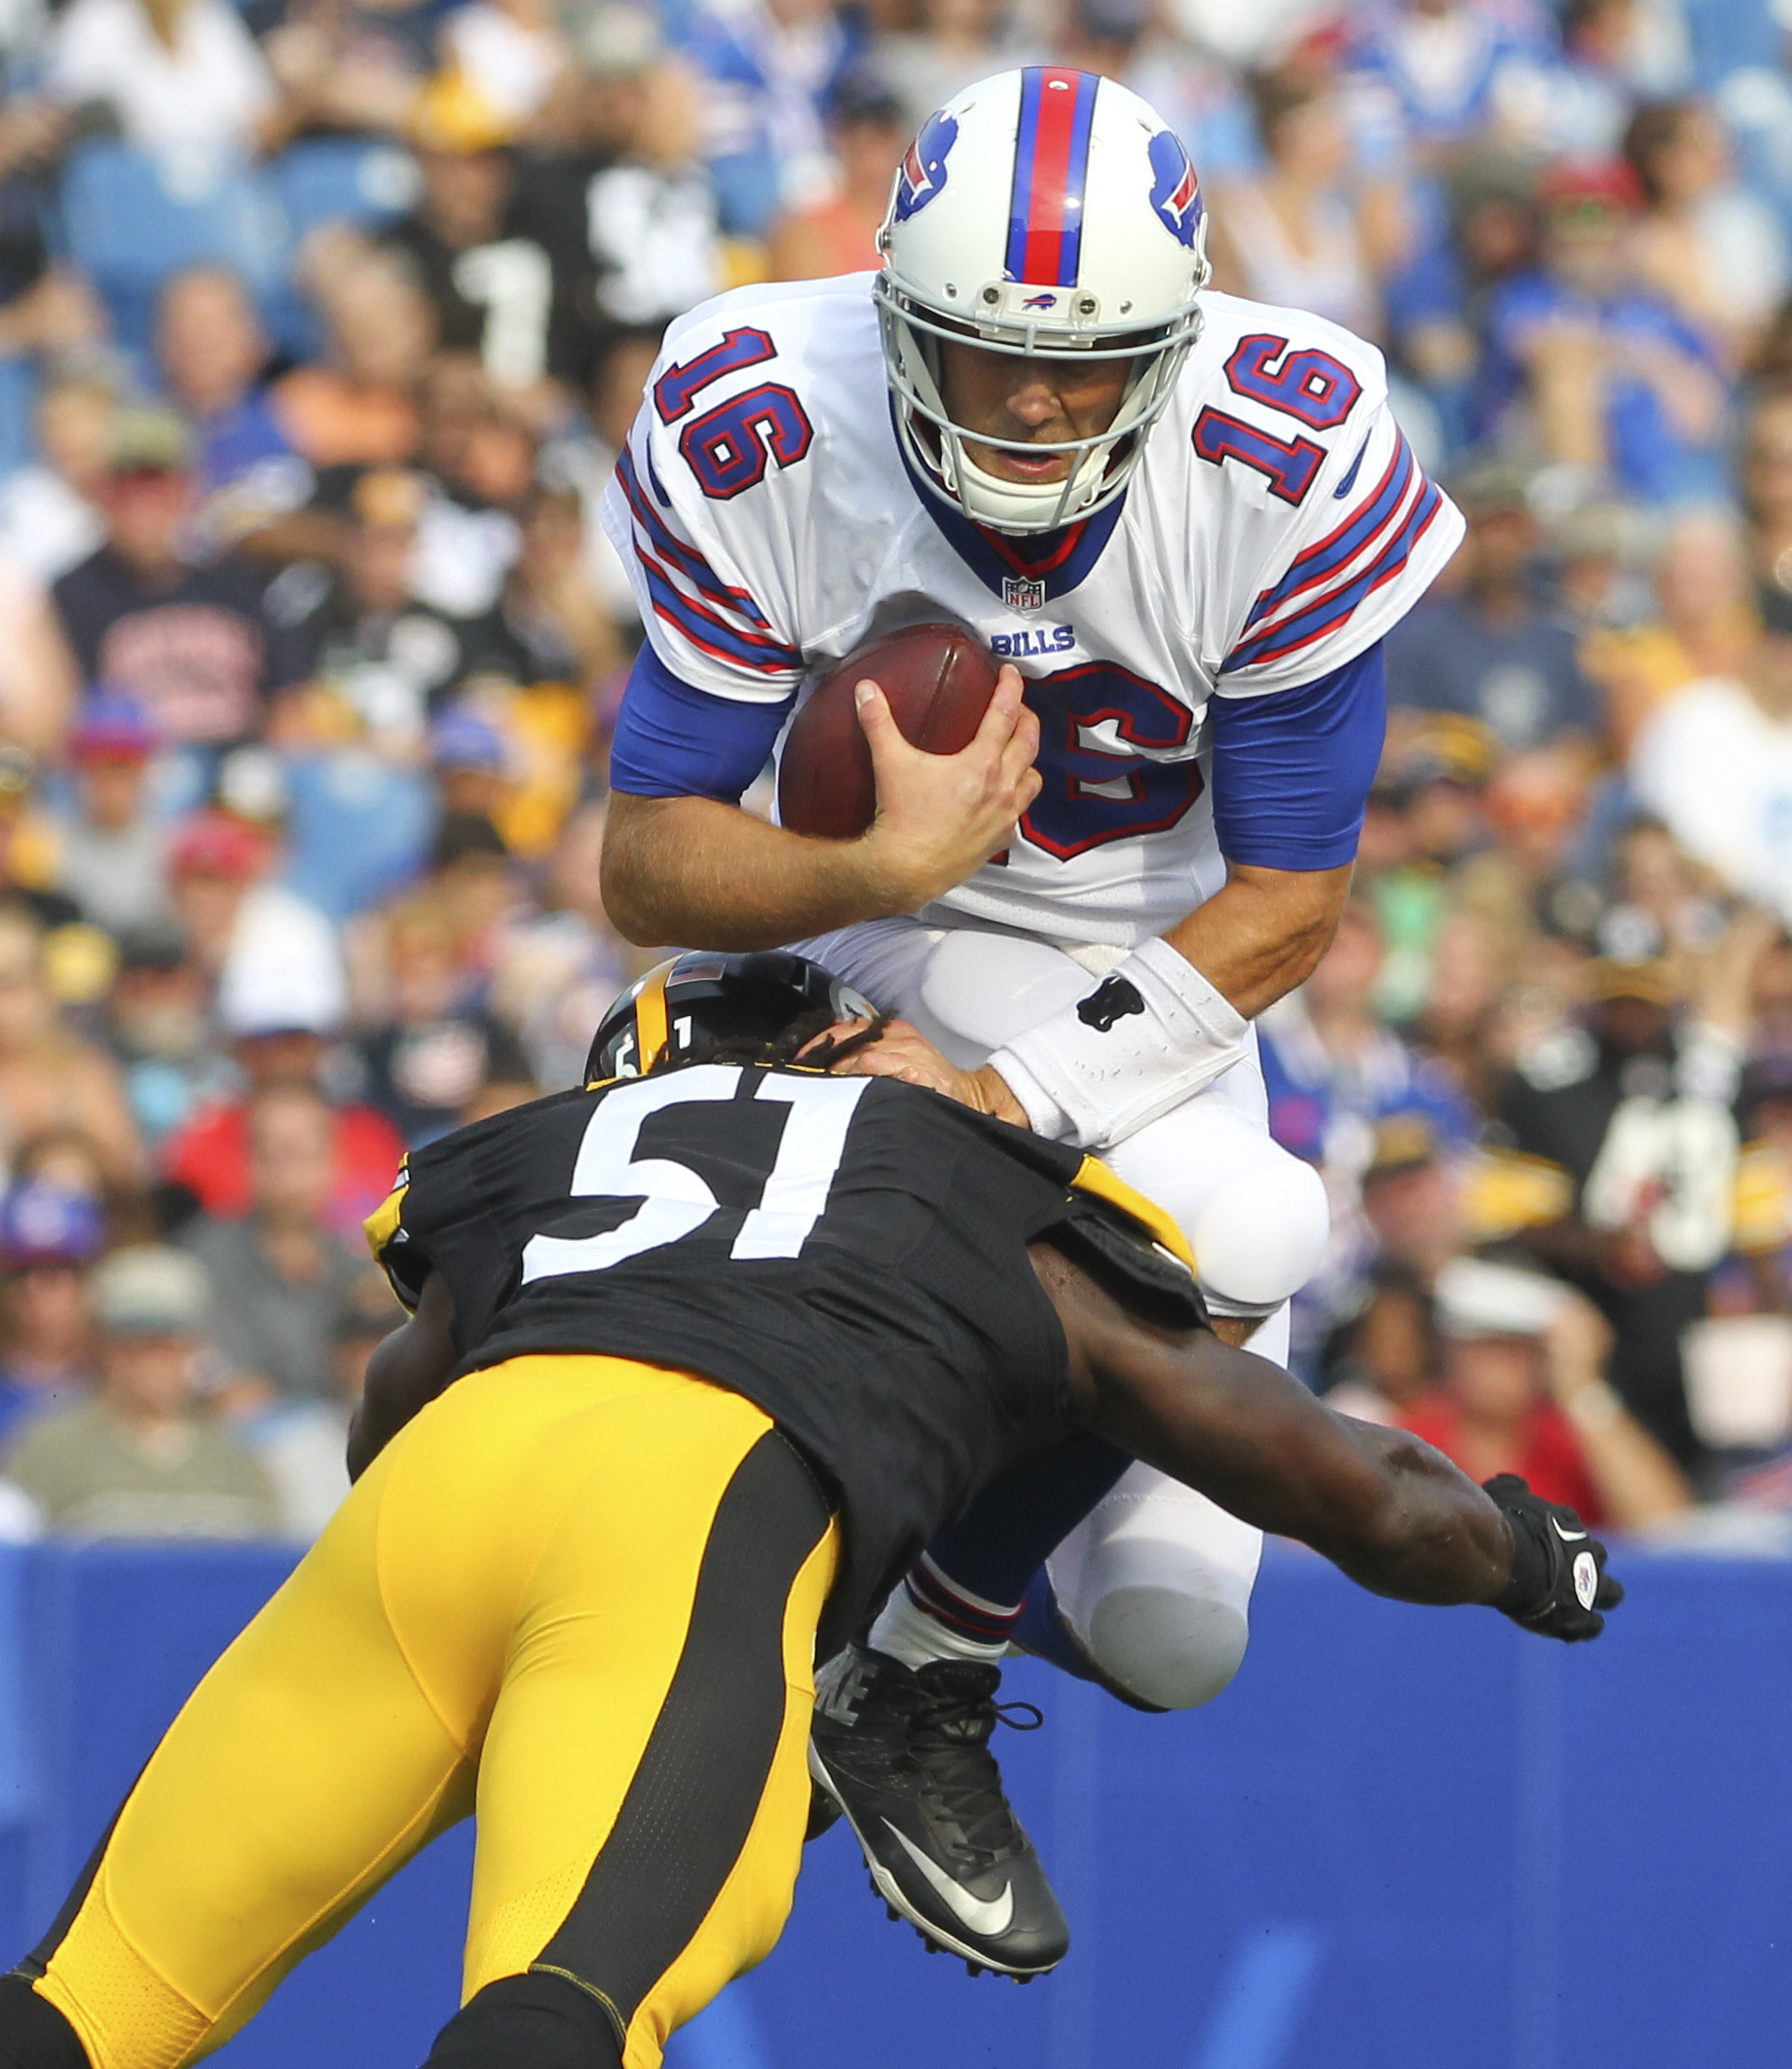 Buffalo Bills quarterback Matt Cassel (16) is stopped short of a first down as he is hit by Pittsburgh Steelers inside linebacker Sean Spence (51) during the first half of a preseason NFL football game on Saturday, Aug. 29, 2015, in Orchard Park, N.Y. (AP